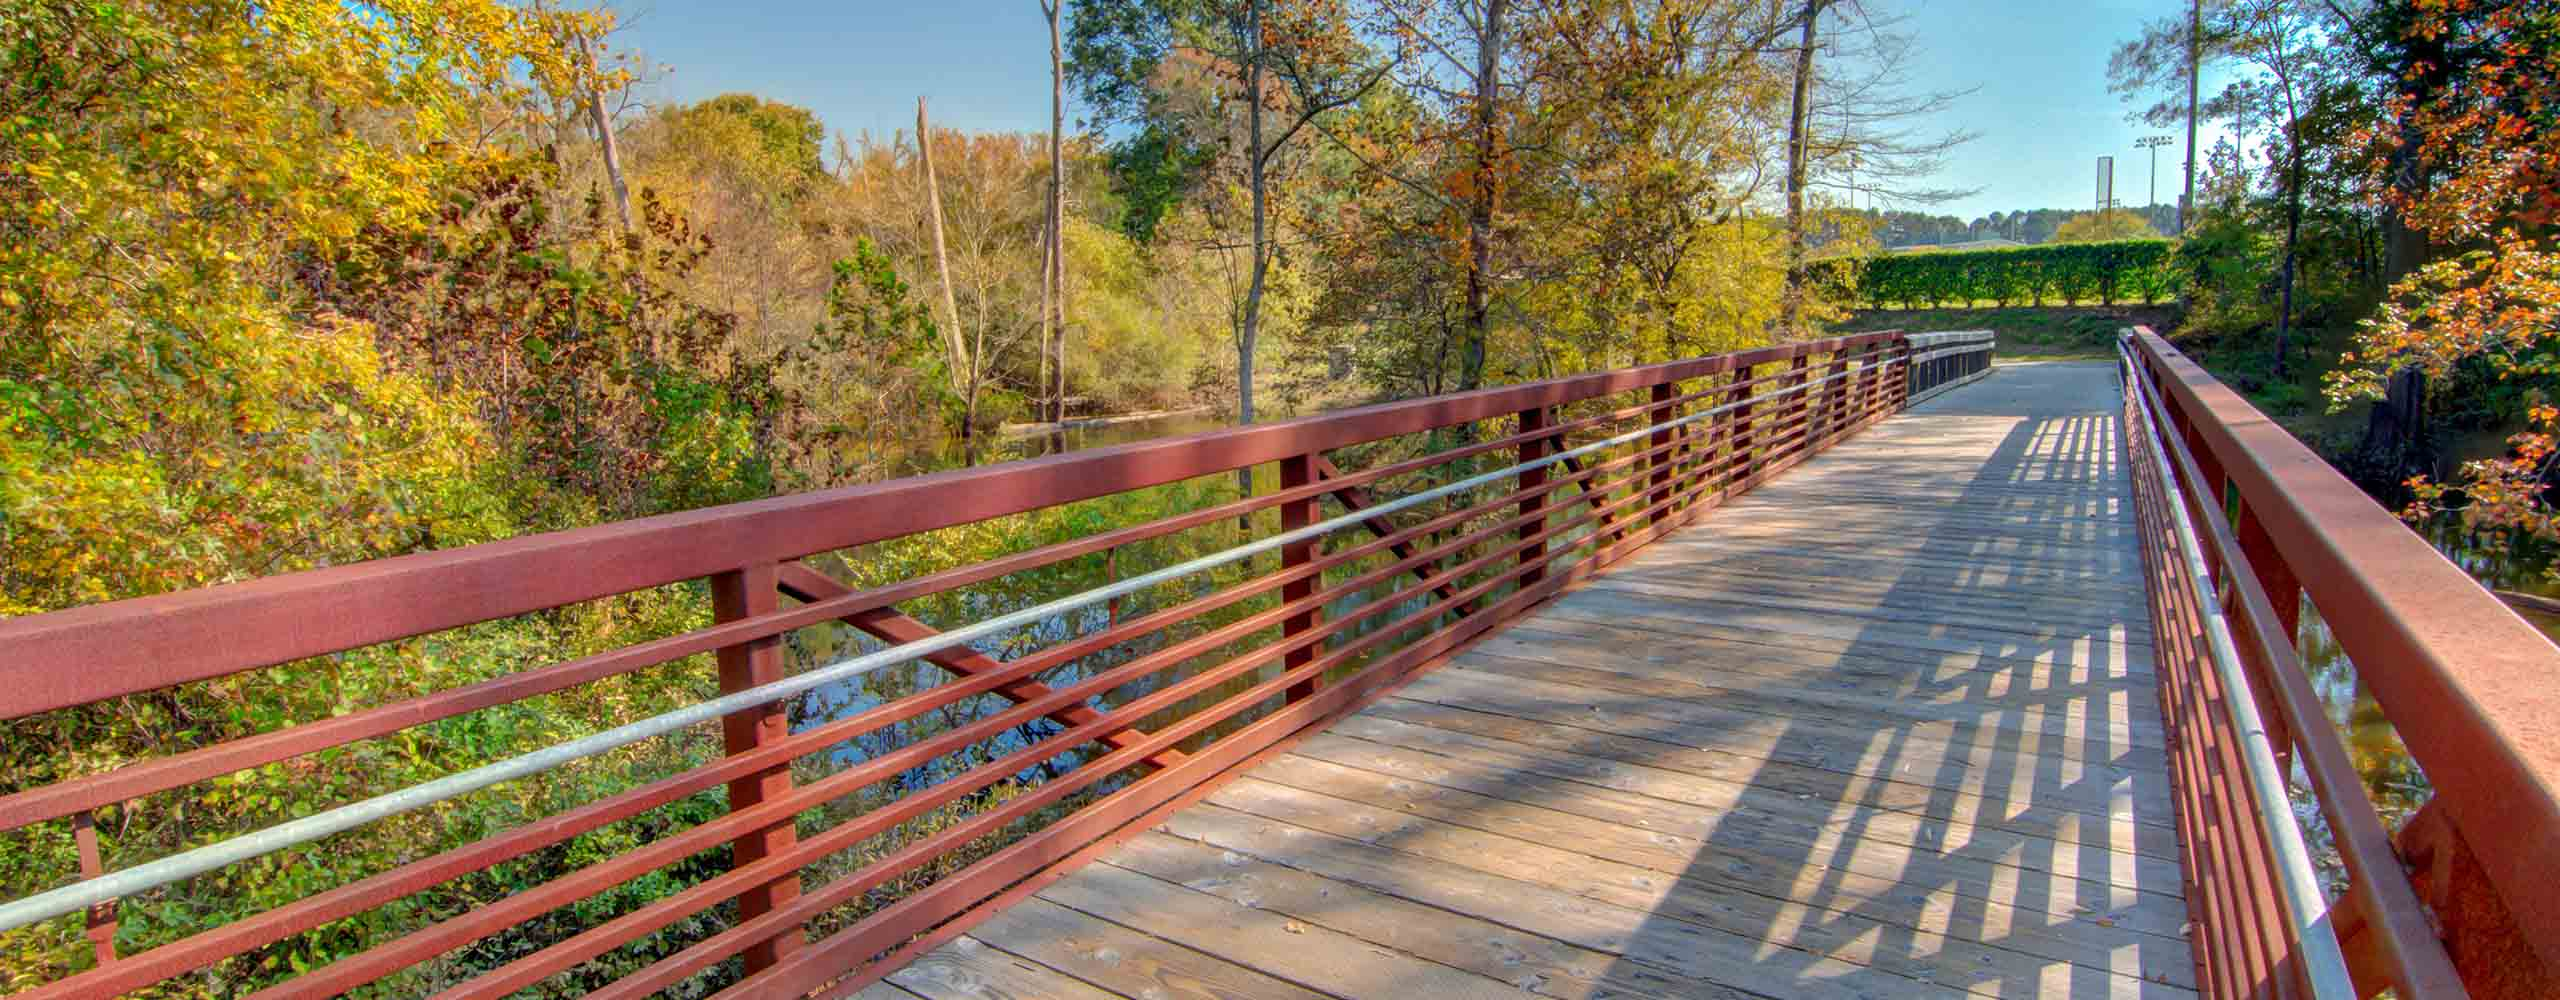 Neuse River Greenway 1